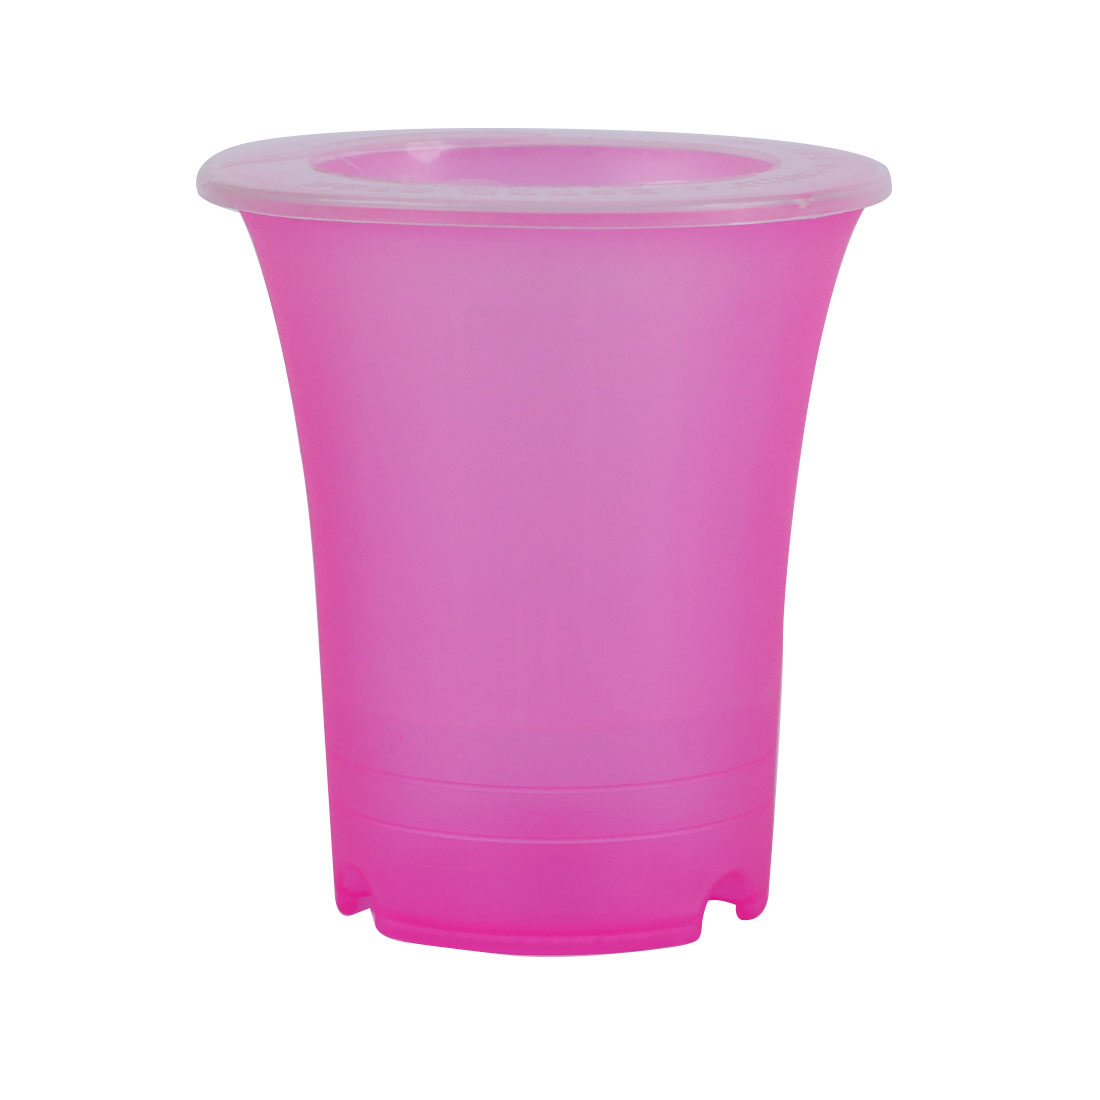 Plastic Double Layers Design Flowerpot Basket Self Watering Planter Fuchsia